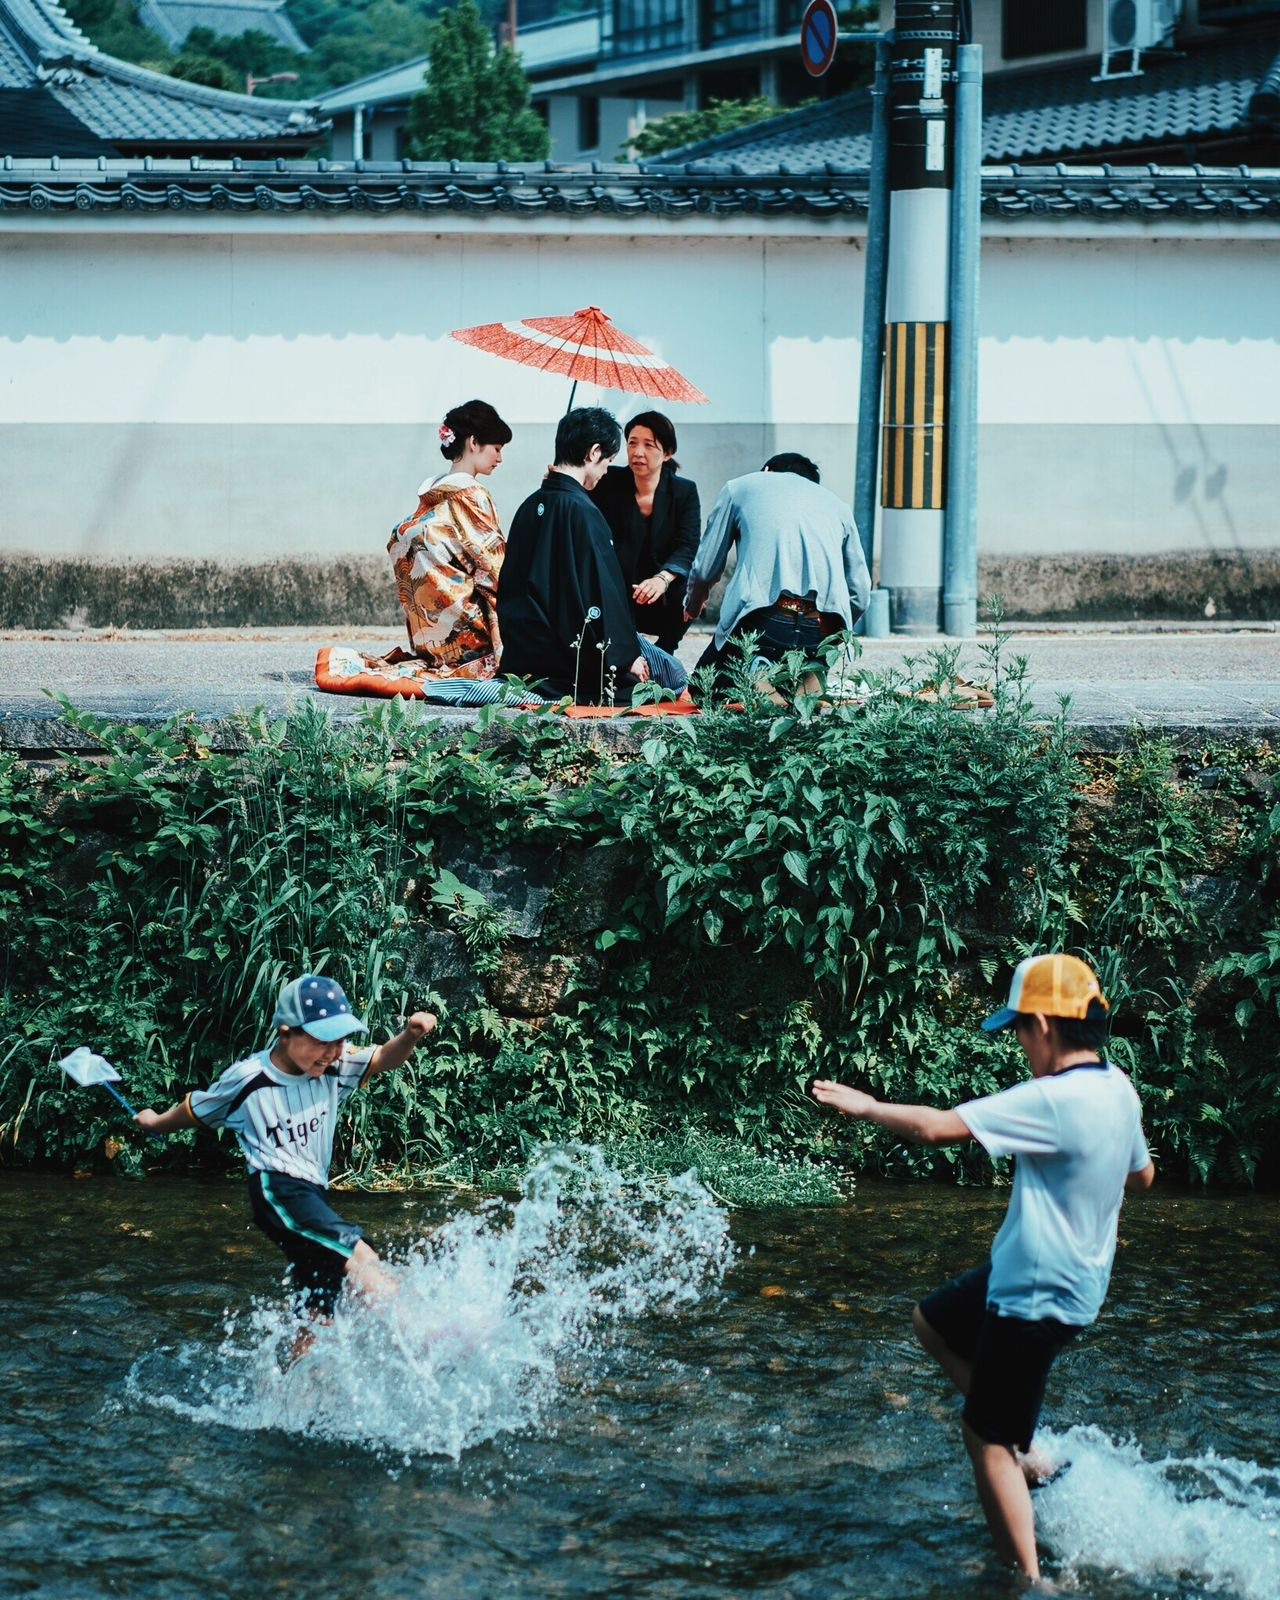 Live For The Story Togetherness Enjoyment Happiness Young Adult Real People Kyoto, Japan Outdoors River